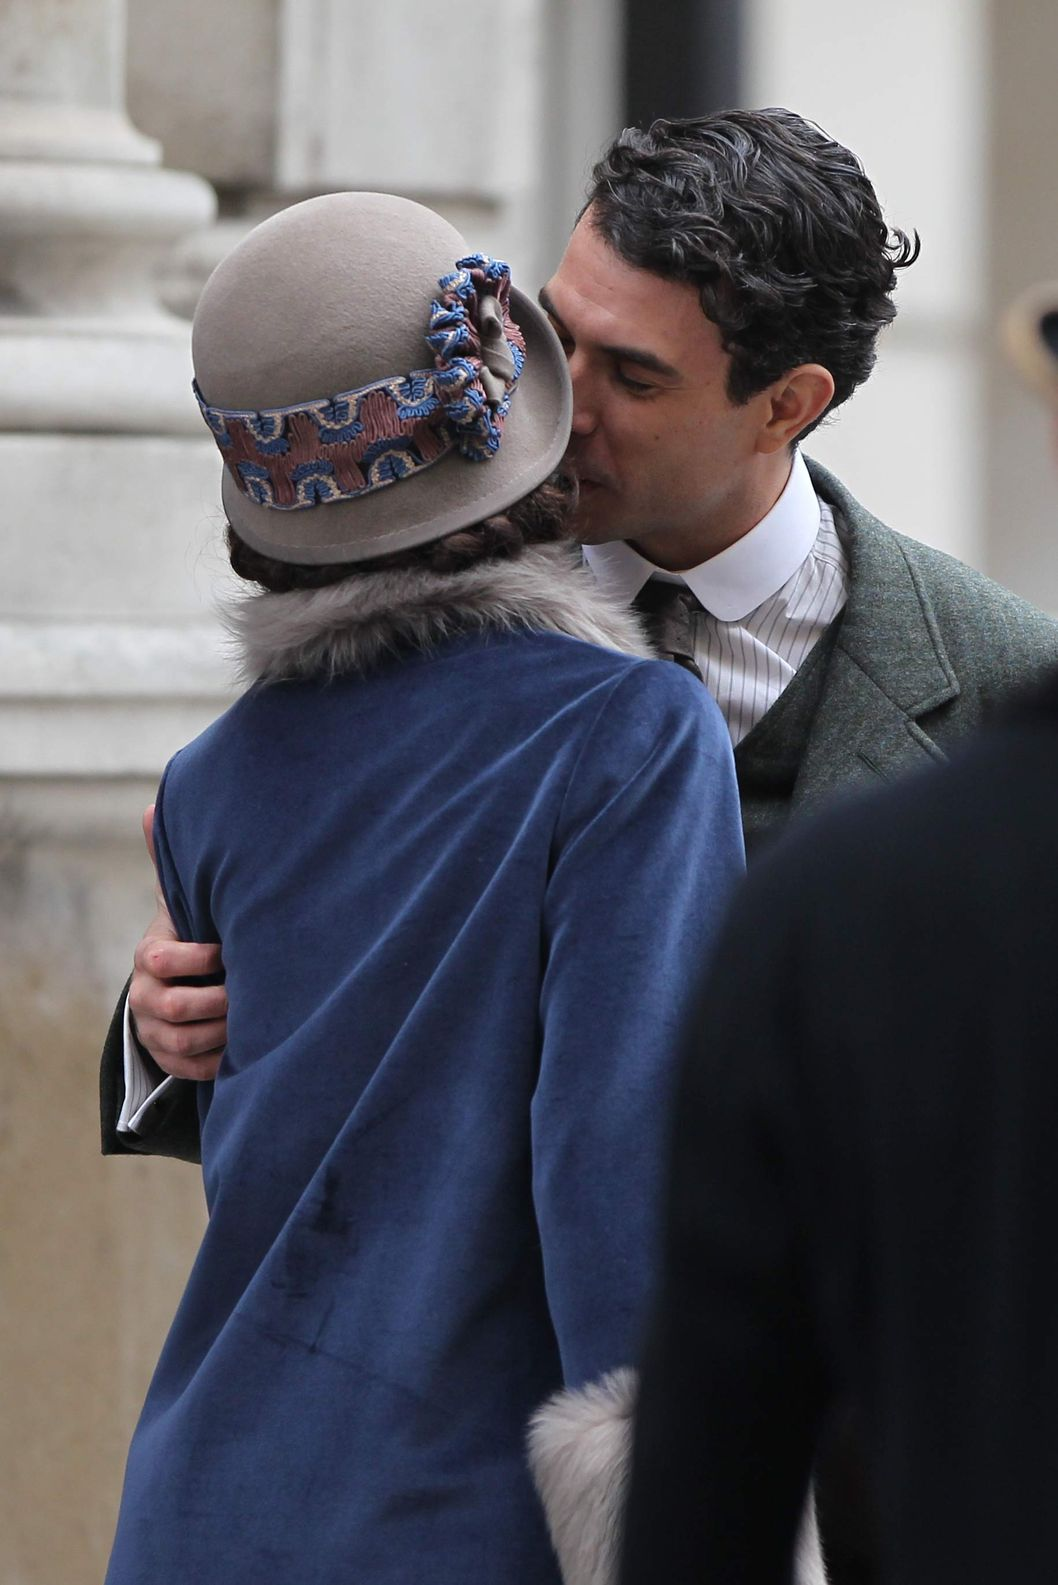 EXCLUSIVE Characters Lady Mary Josephine Crawley played by Michelle Dockery and her on screen love interest Viscount Anthony Gillingham played by Tom Cullen are seen filming the hit ITV drama Downton Abbey on location in London, although the set design suggests that they are Liverpool for these particular scenes.Featuring: Michelle Dockery,Tom CullenWhere: London, United KingdomWhen: 15 Feb 2014Credit: David Sims/WENN.com